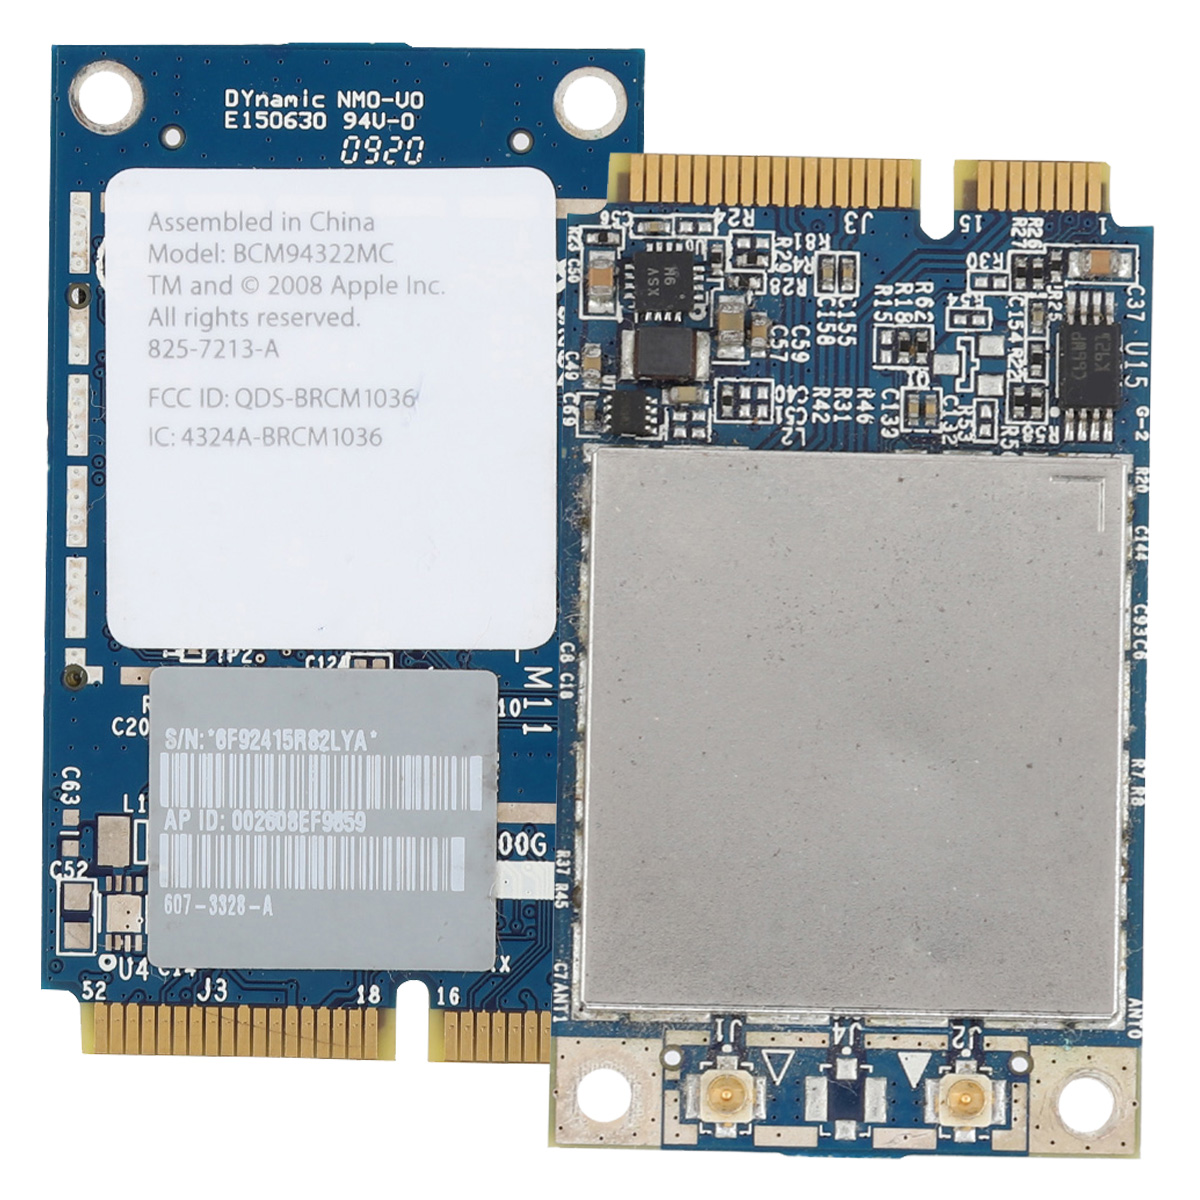 BCM94322MC 300M Mini PCI-E WiFi Card Dual-Frequency Network Cards For Mac Pro MB988Z/A Network Card